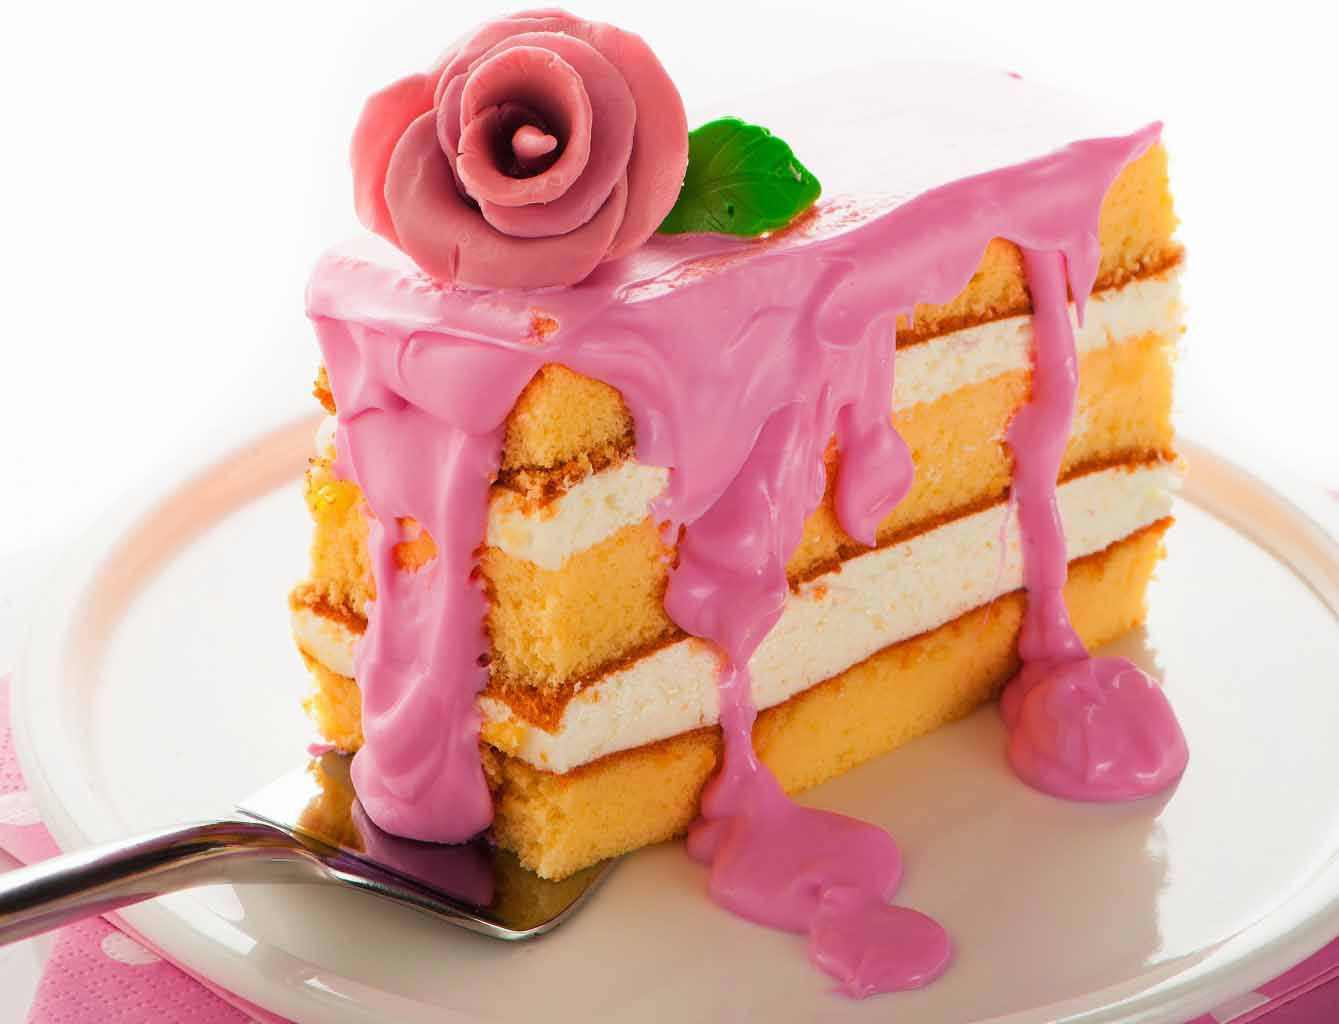 Cake Images Sweets : HD Wallpapers: Sweets Cakes Wallpapers